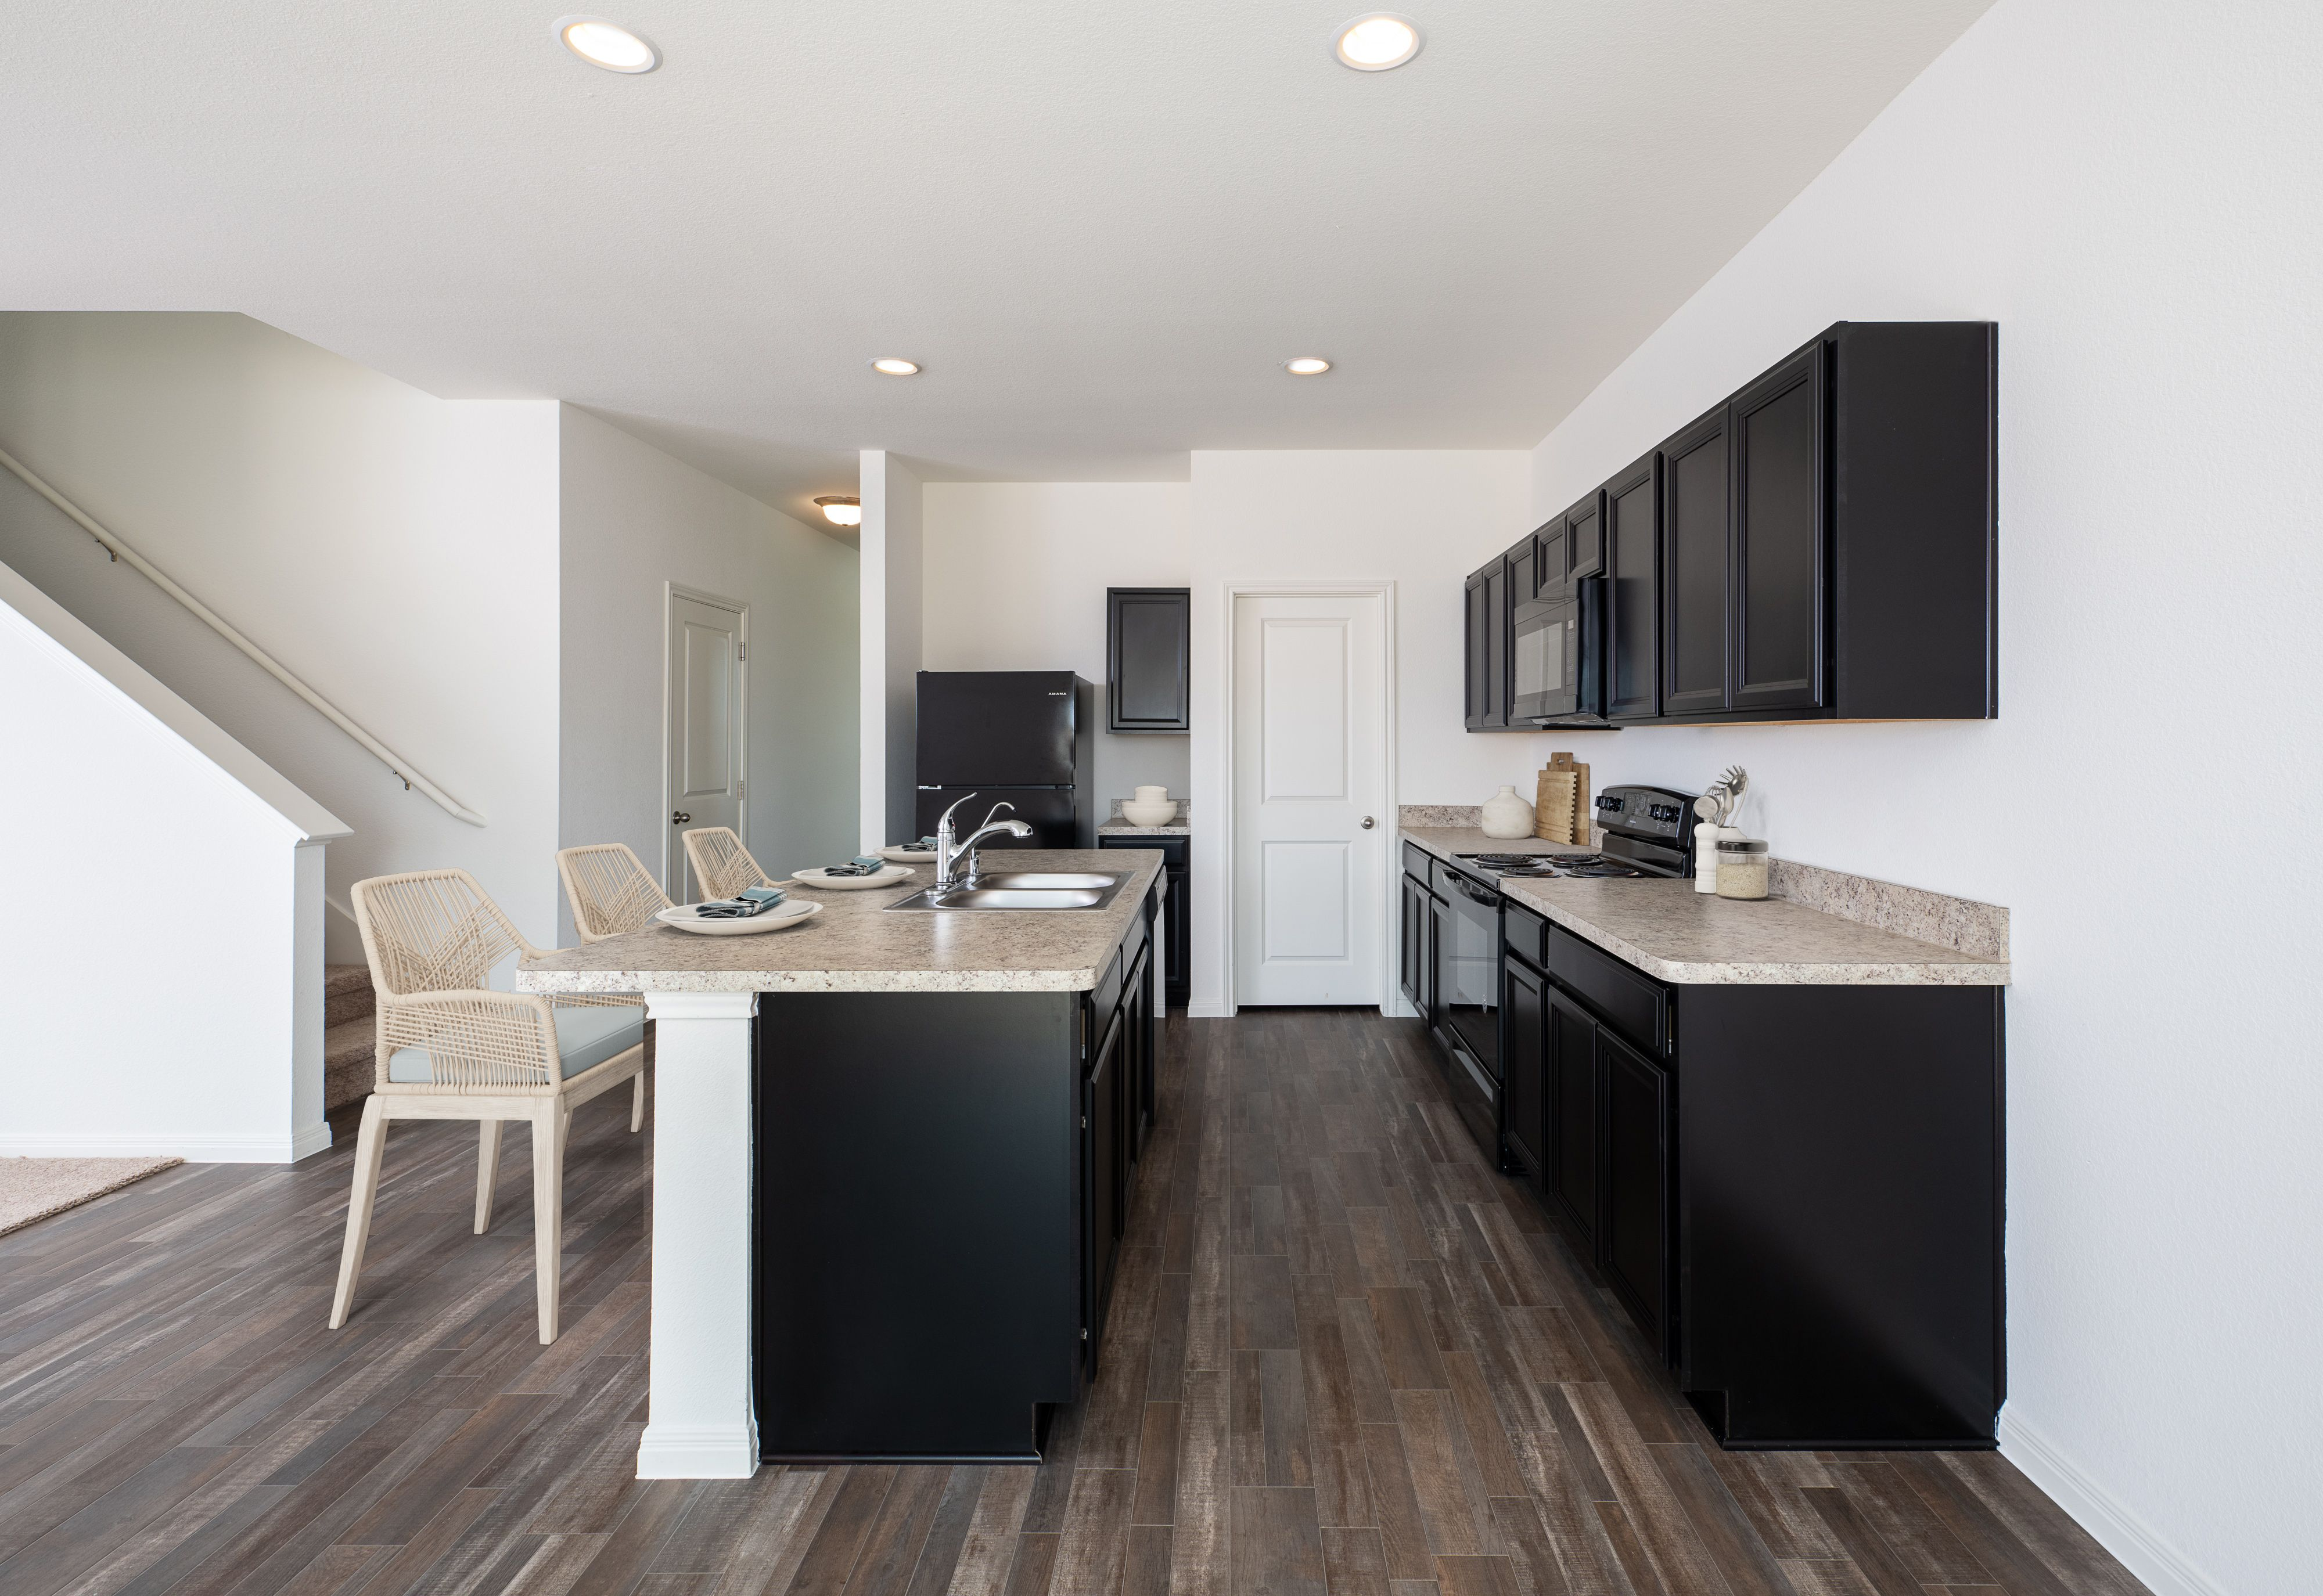 Kitchen featured in the Spectra By Starlight Homes in Austin, TX